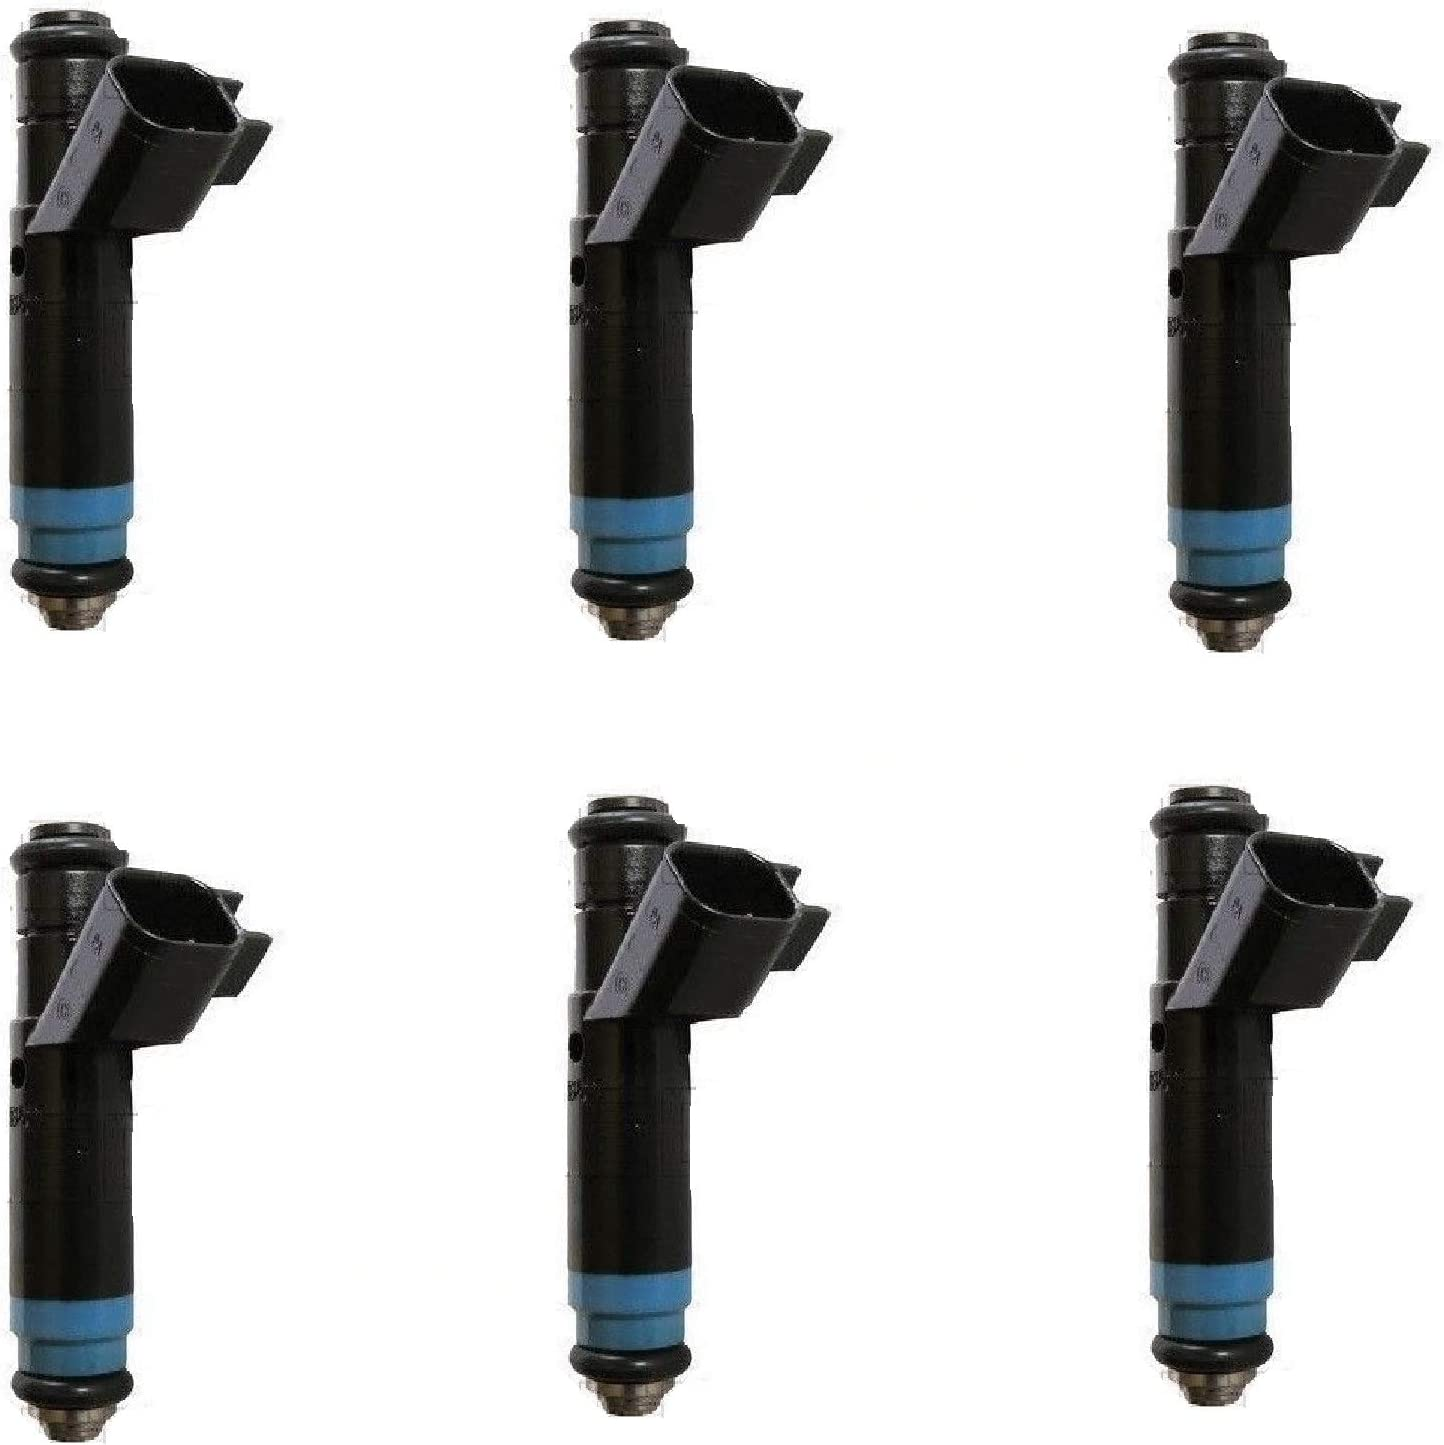 AAP Set of 6 Re-Manufactured Upgraded Siemens 4 Hole Fuel Injectors for 05-08 Ford F-150 4.2L #5L3E-A6C